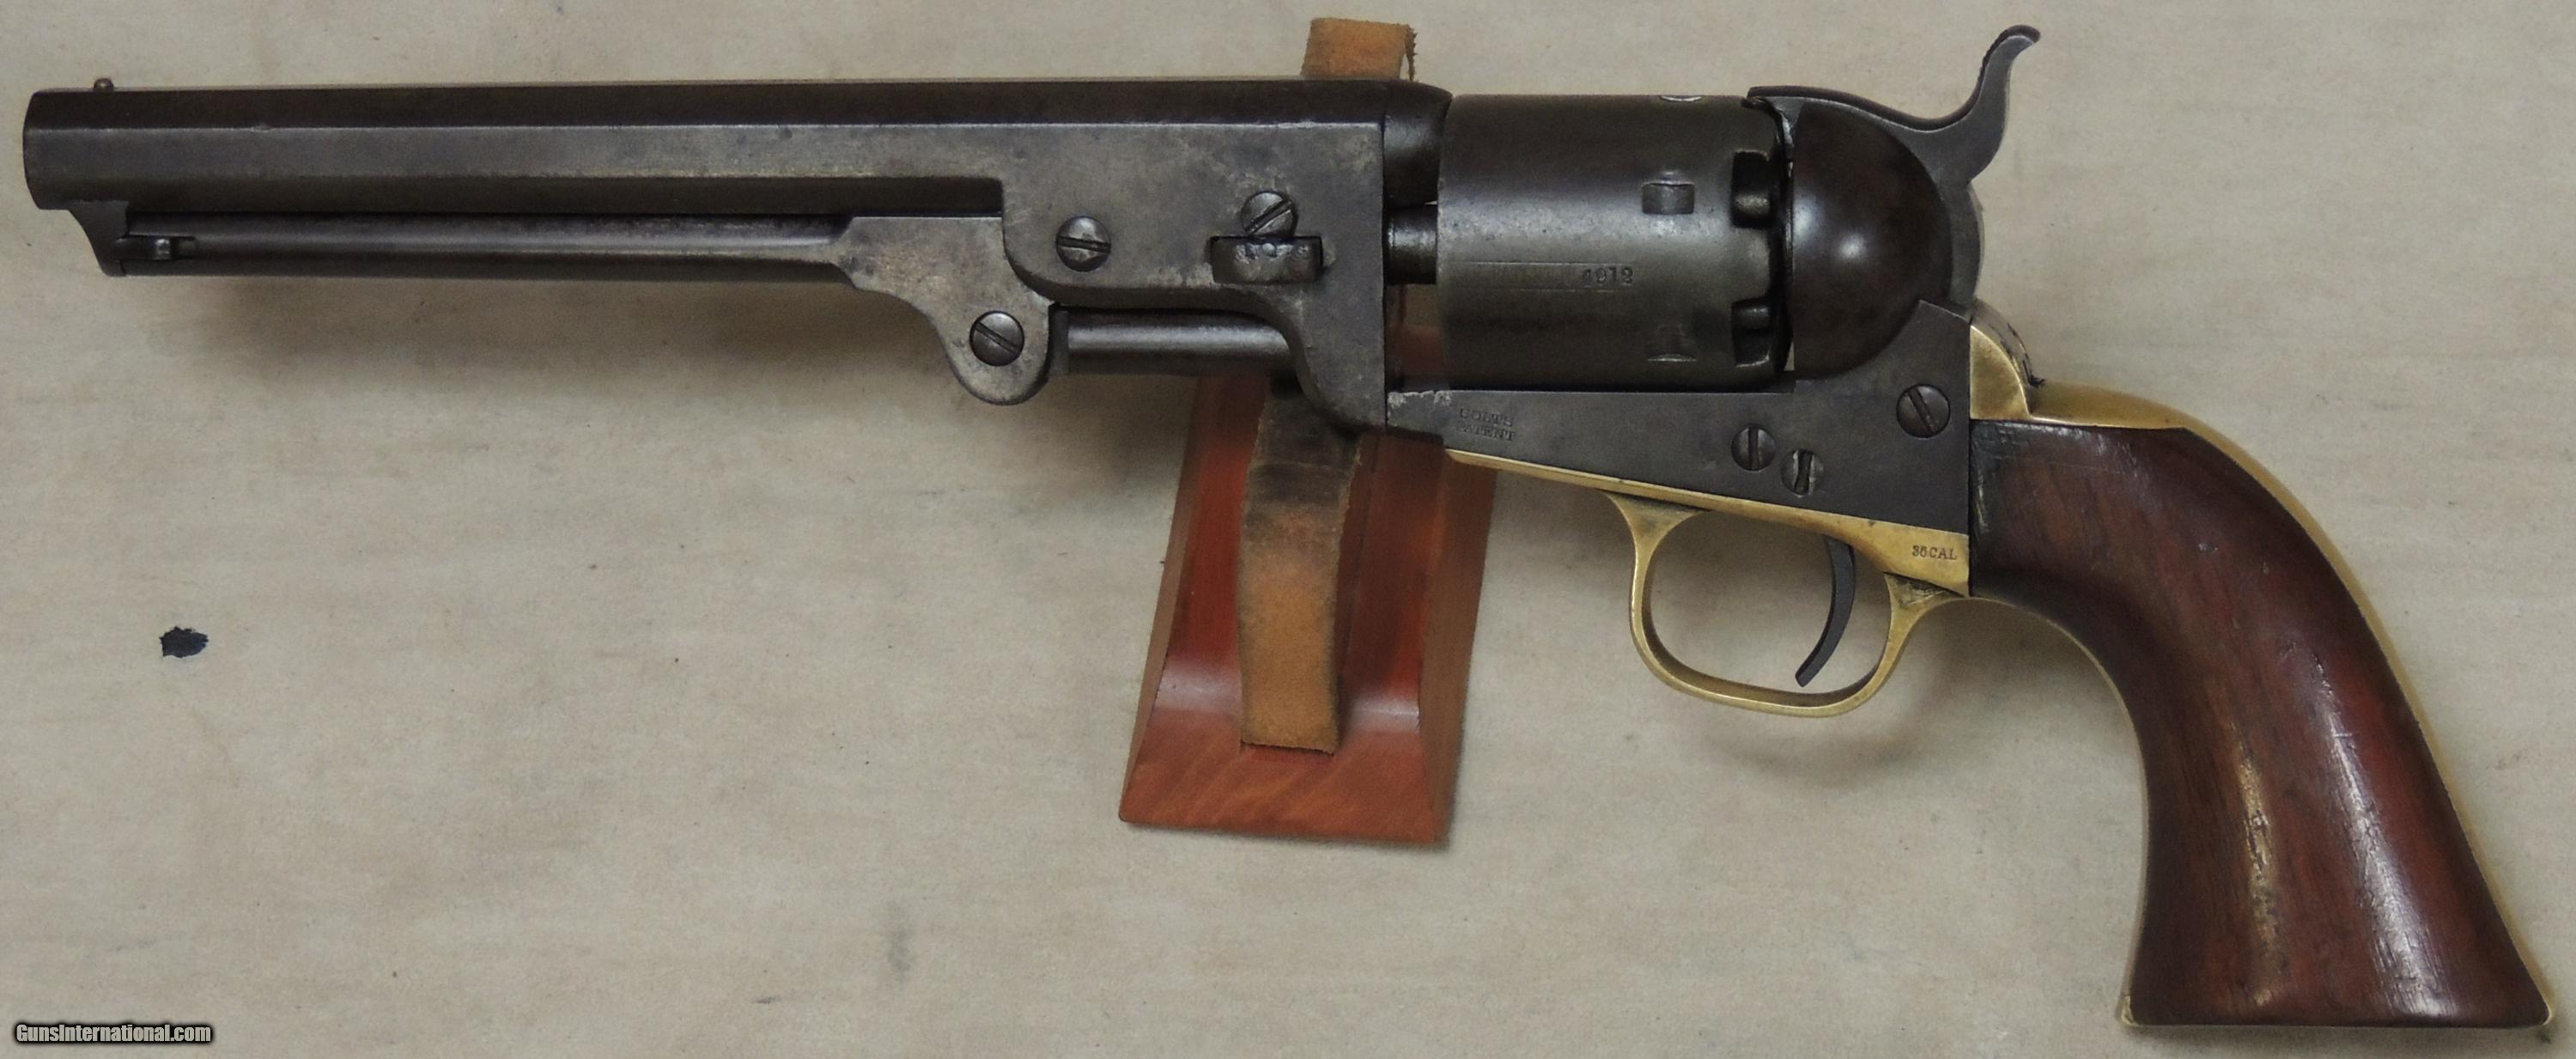 cased colt 1851 navy 4th model 36 caliber percussion revolver s n